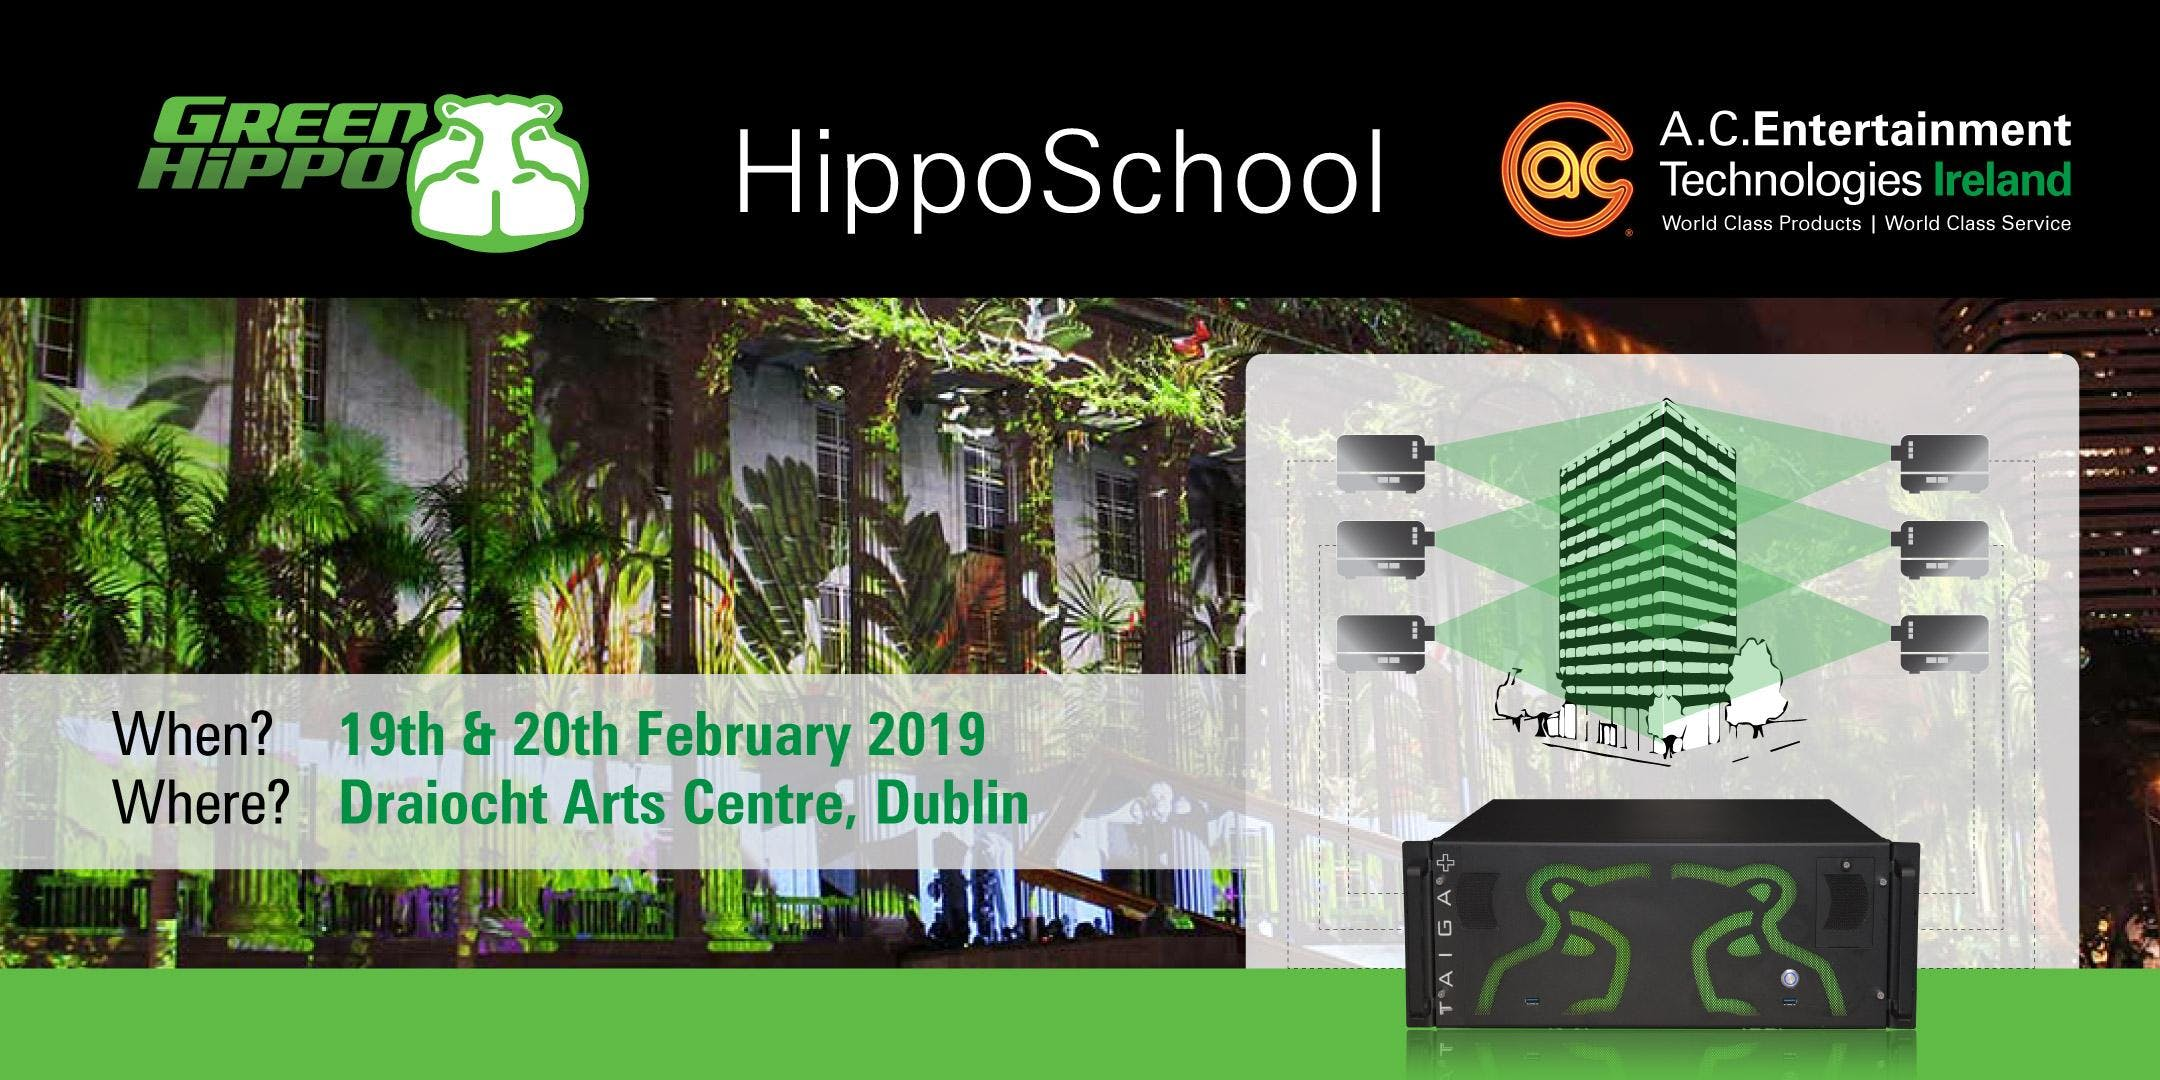 HippoSchool - Green Hippo Hippotizer Media Server Training